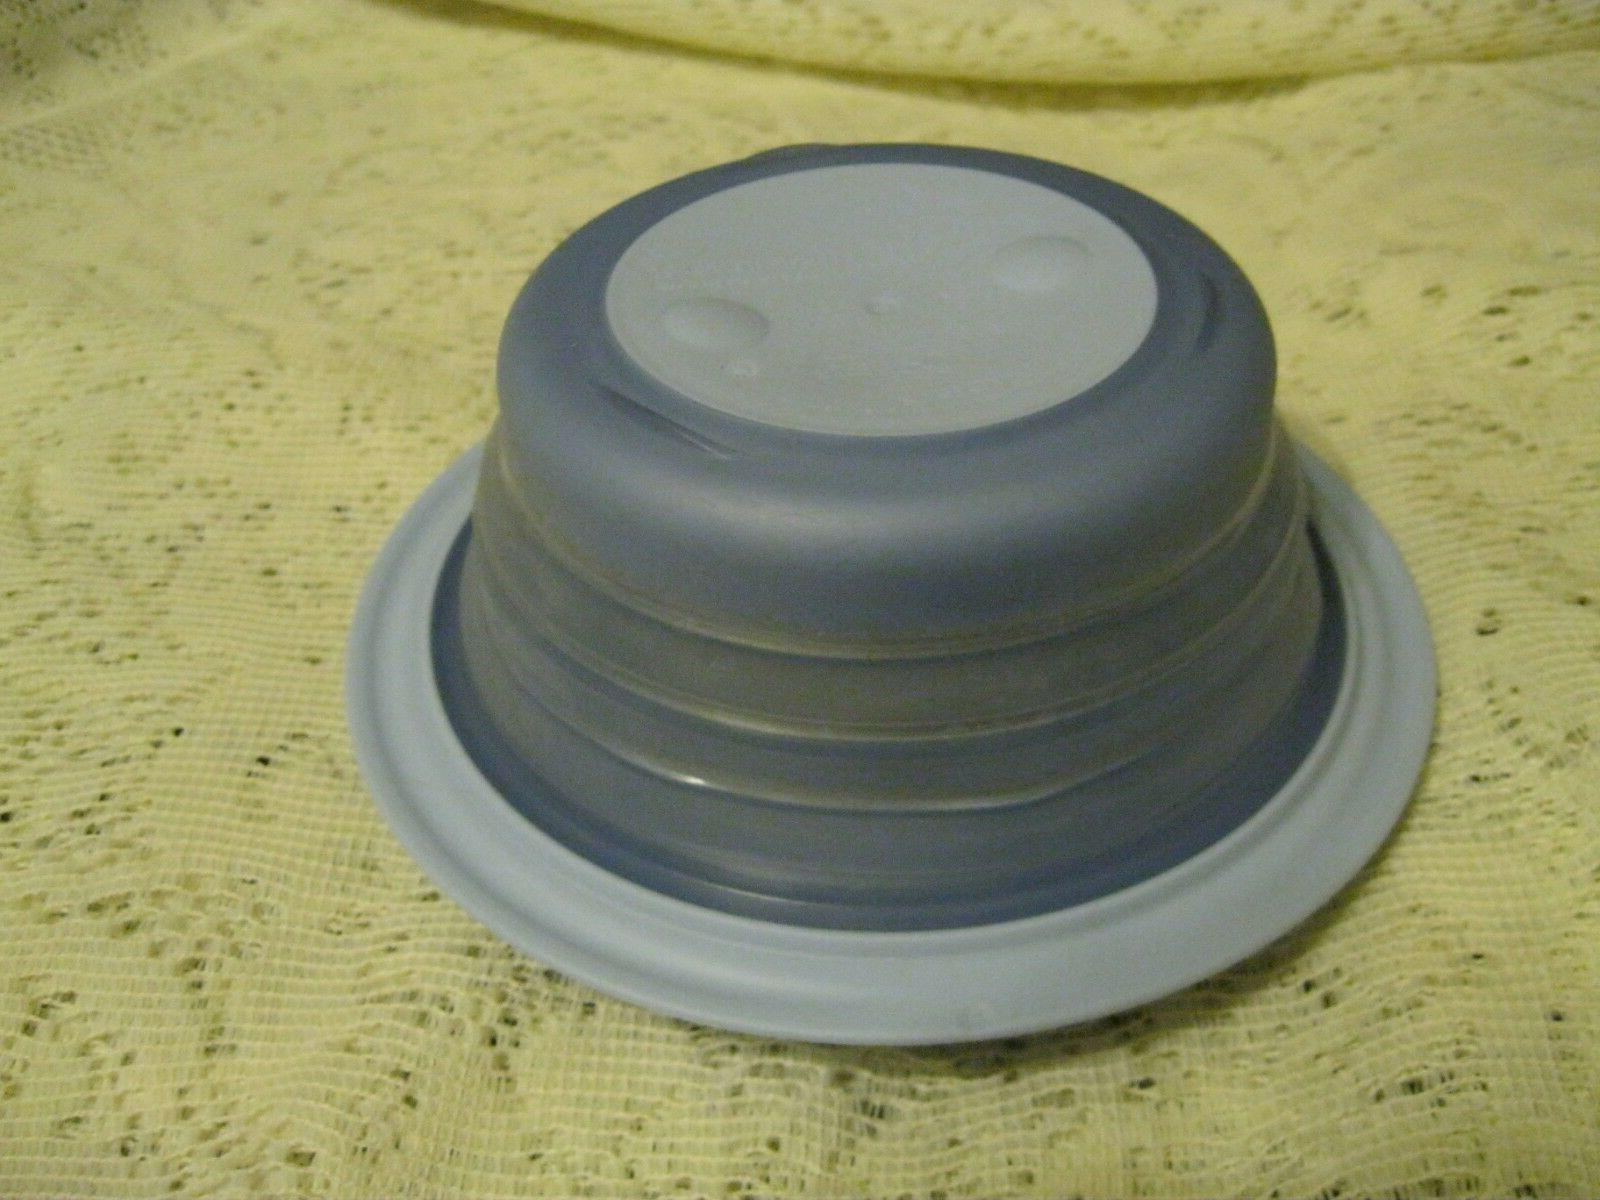 Rubbermaid Collapsible Bowl Lid 2.5 Cup New